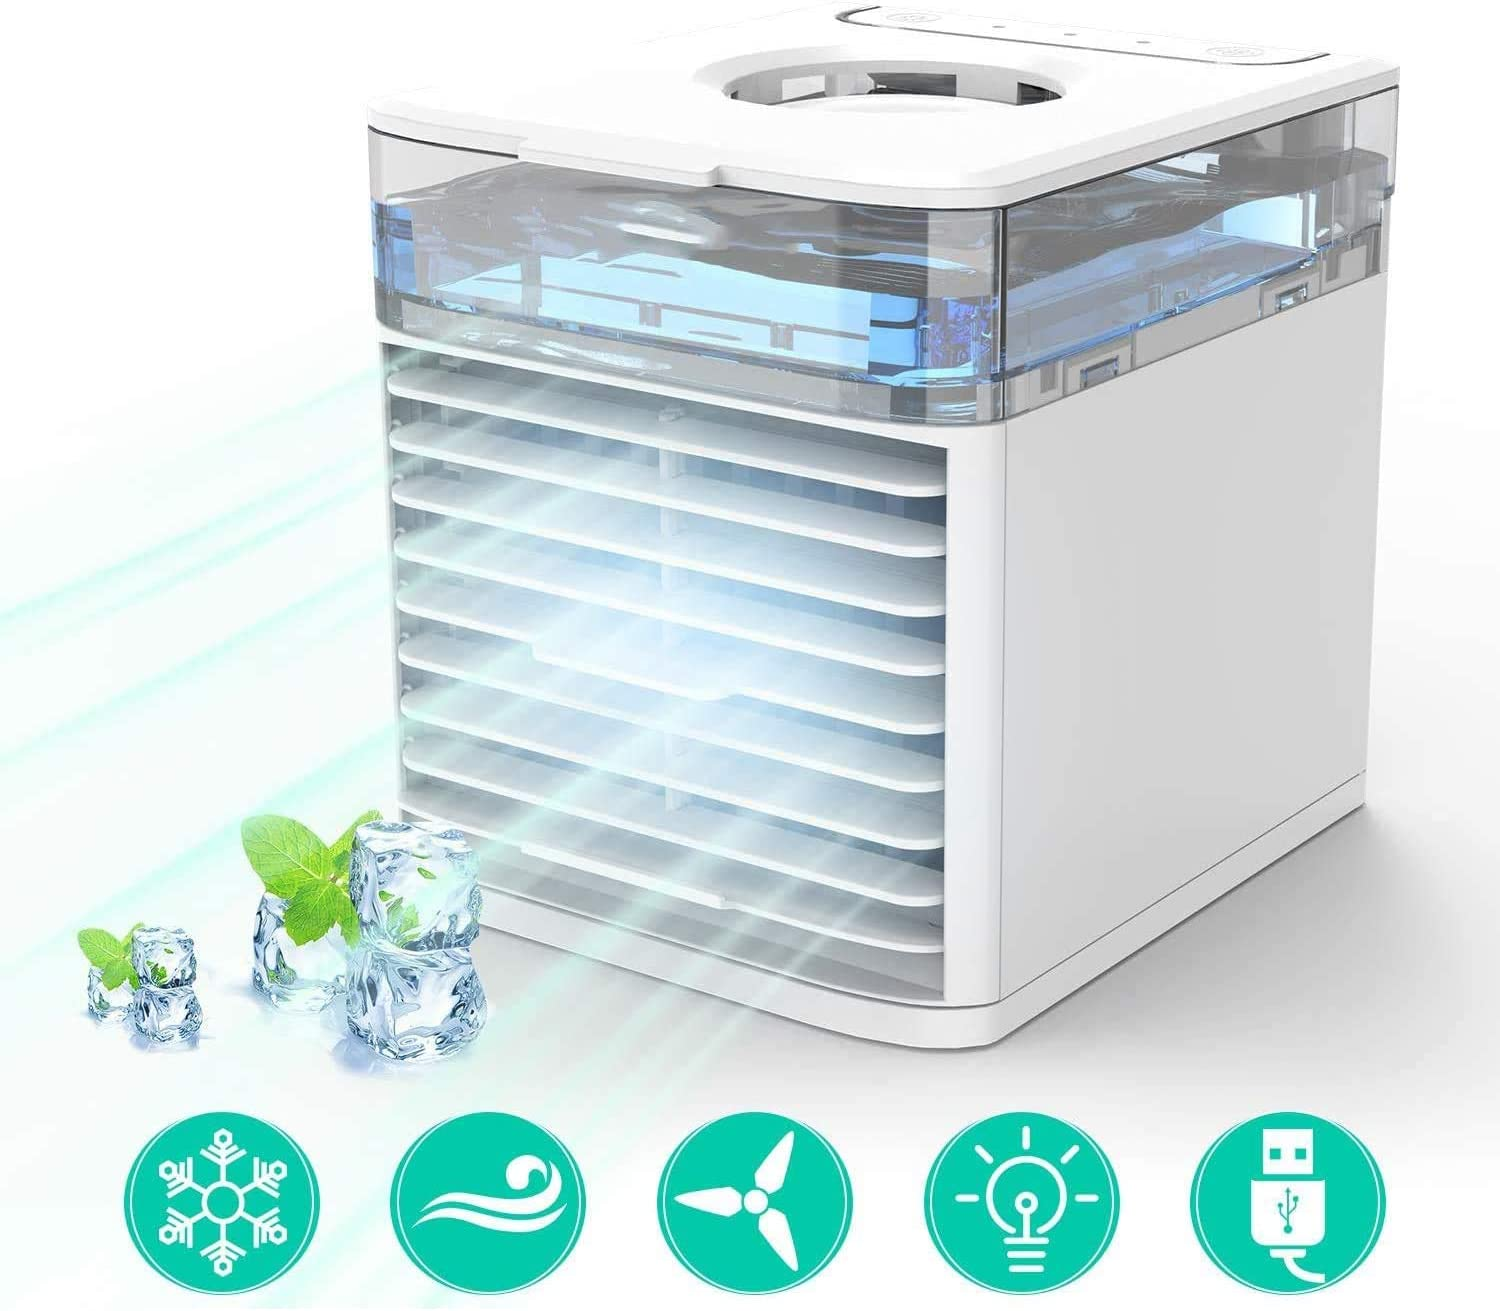 PBQWER Portable Air Conditioner Air Cooler, Desk Cooling Fan, Air Conditioning Unit for Home Office, Timer 3 Speed Fan